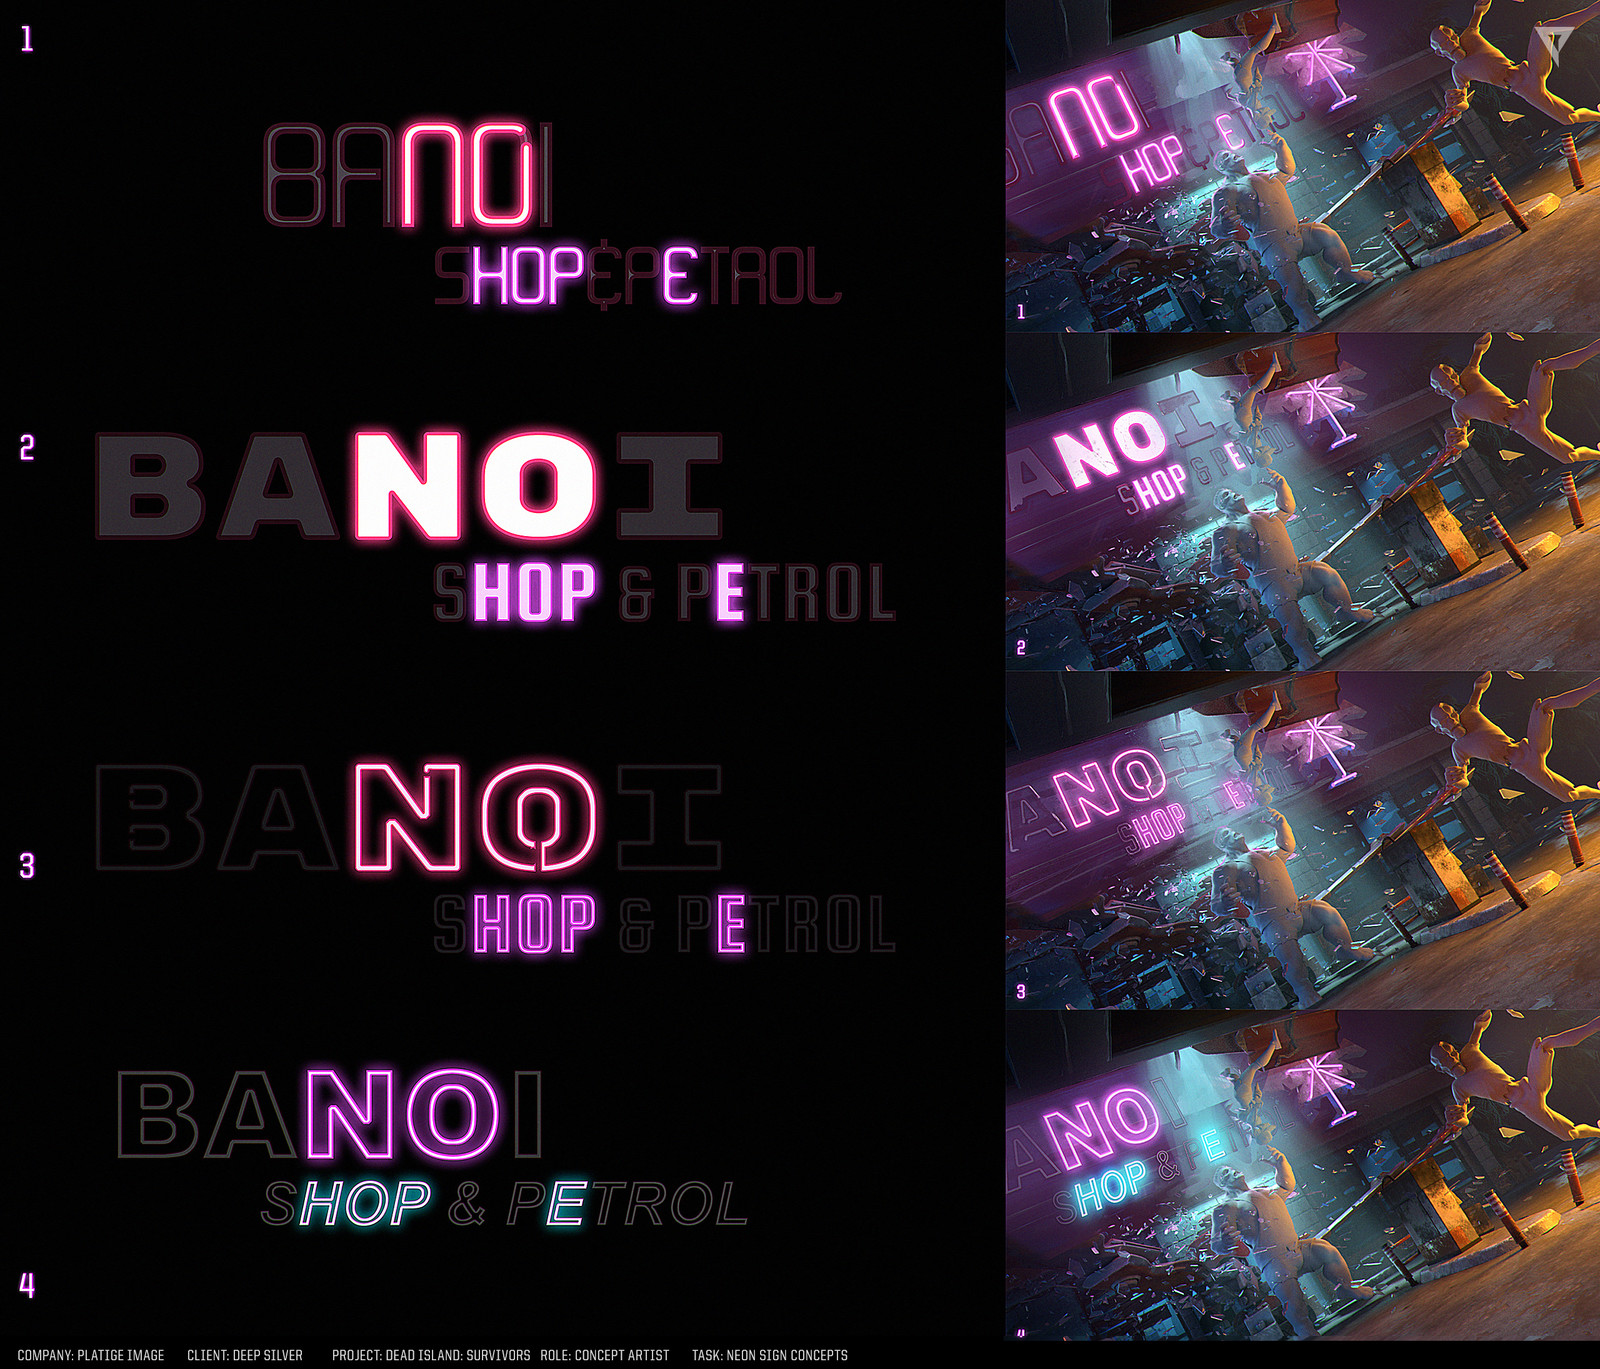 Neon sign concepts